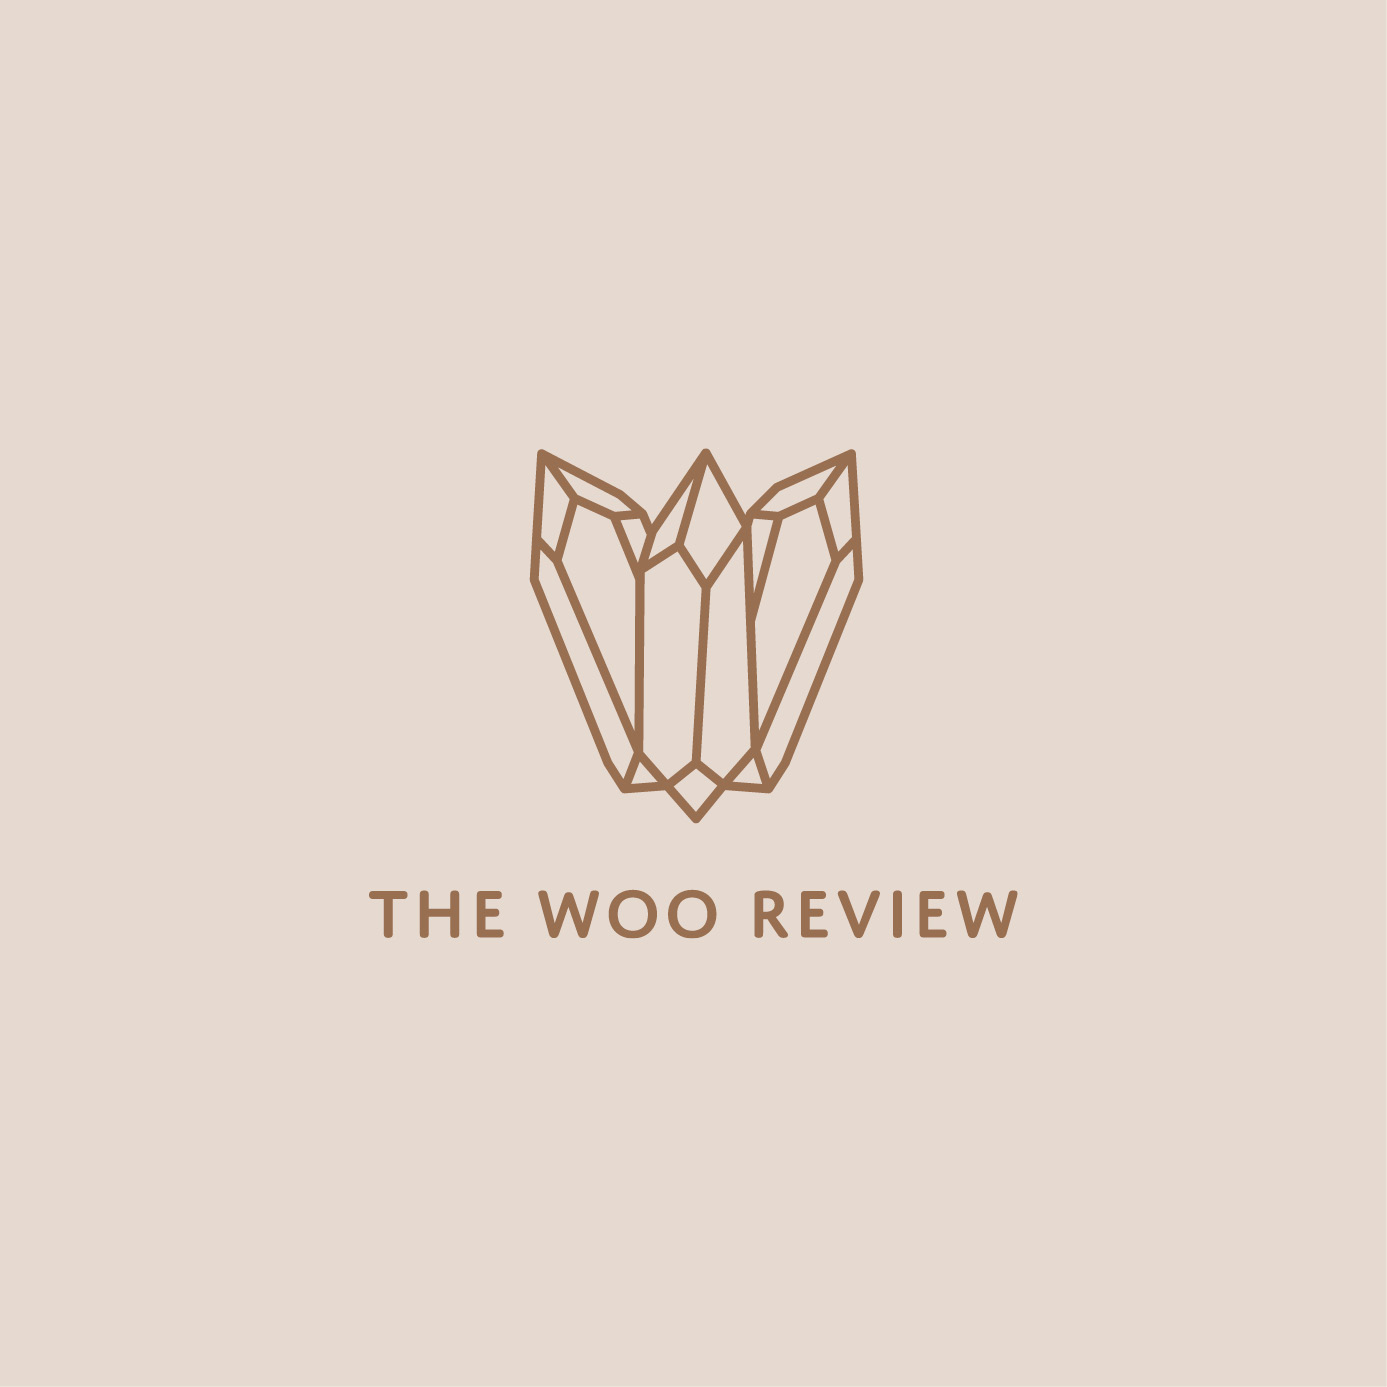 The Woo Review branding, photo direction, Instagram templates, and website consulting by Jennifer Miranda.